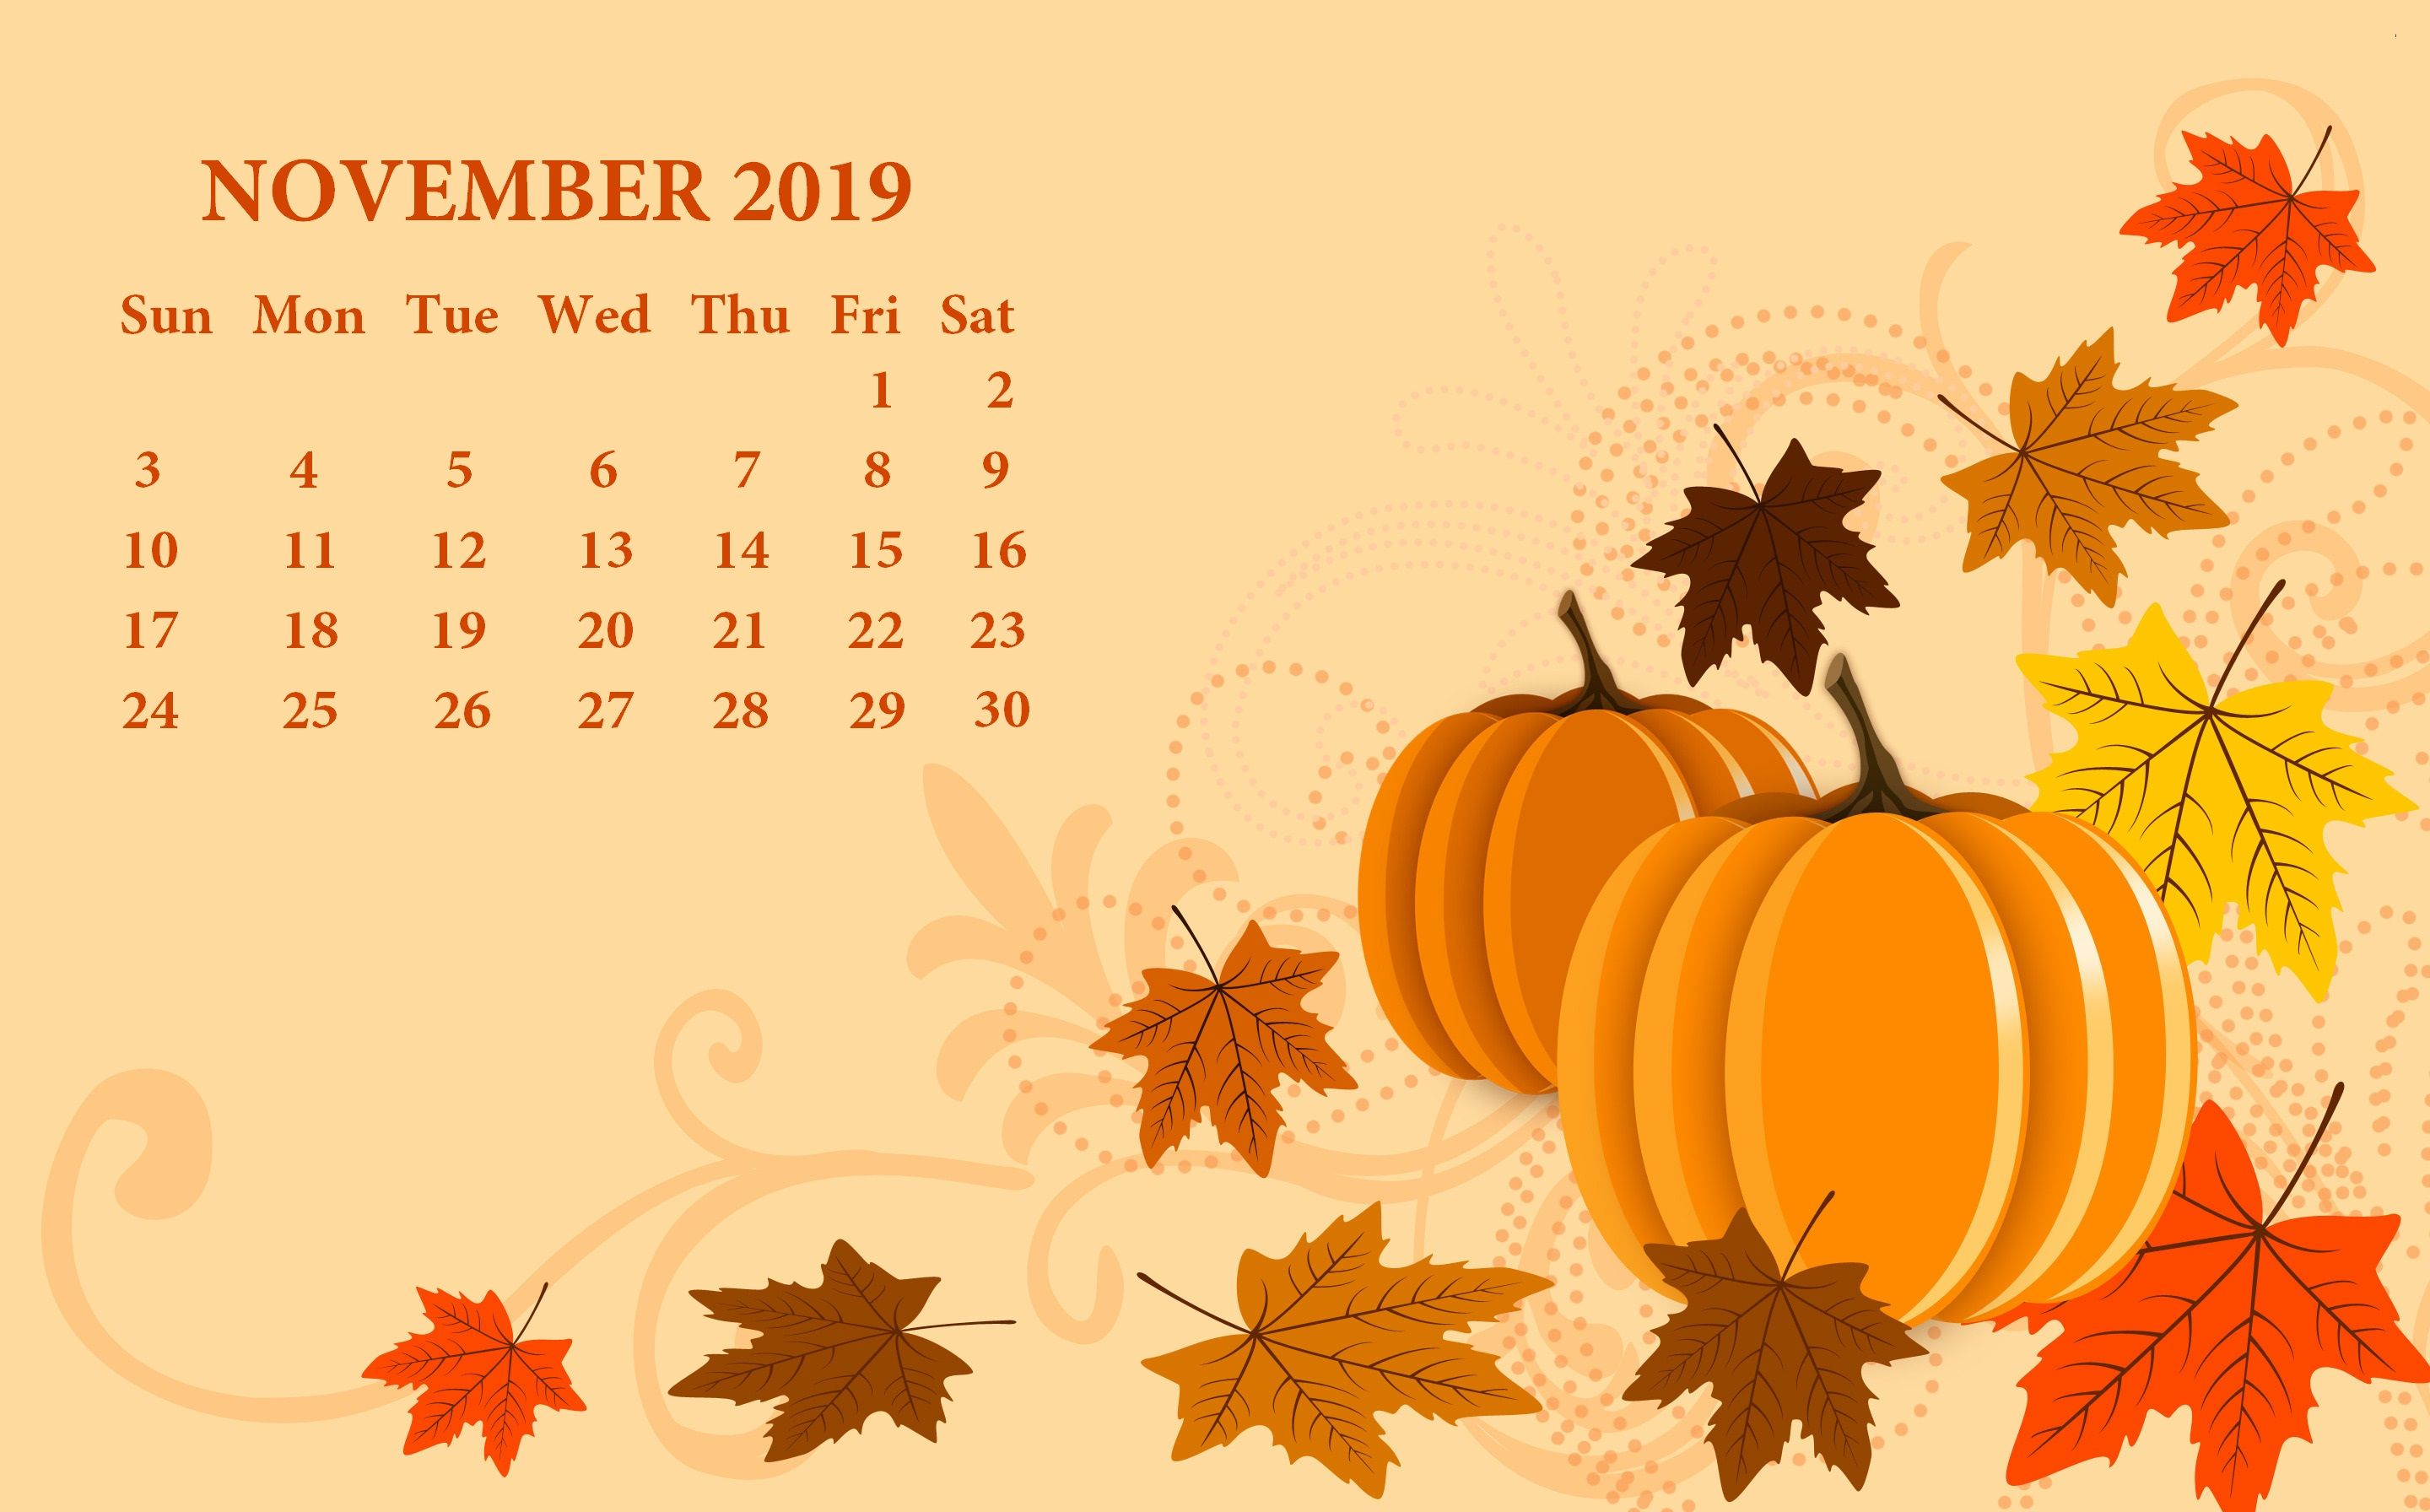 November 2019 Calendar Wallpapers   Top November 2019 2880x1792